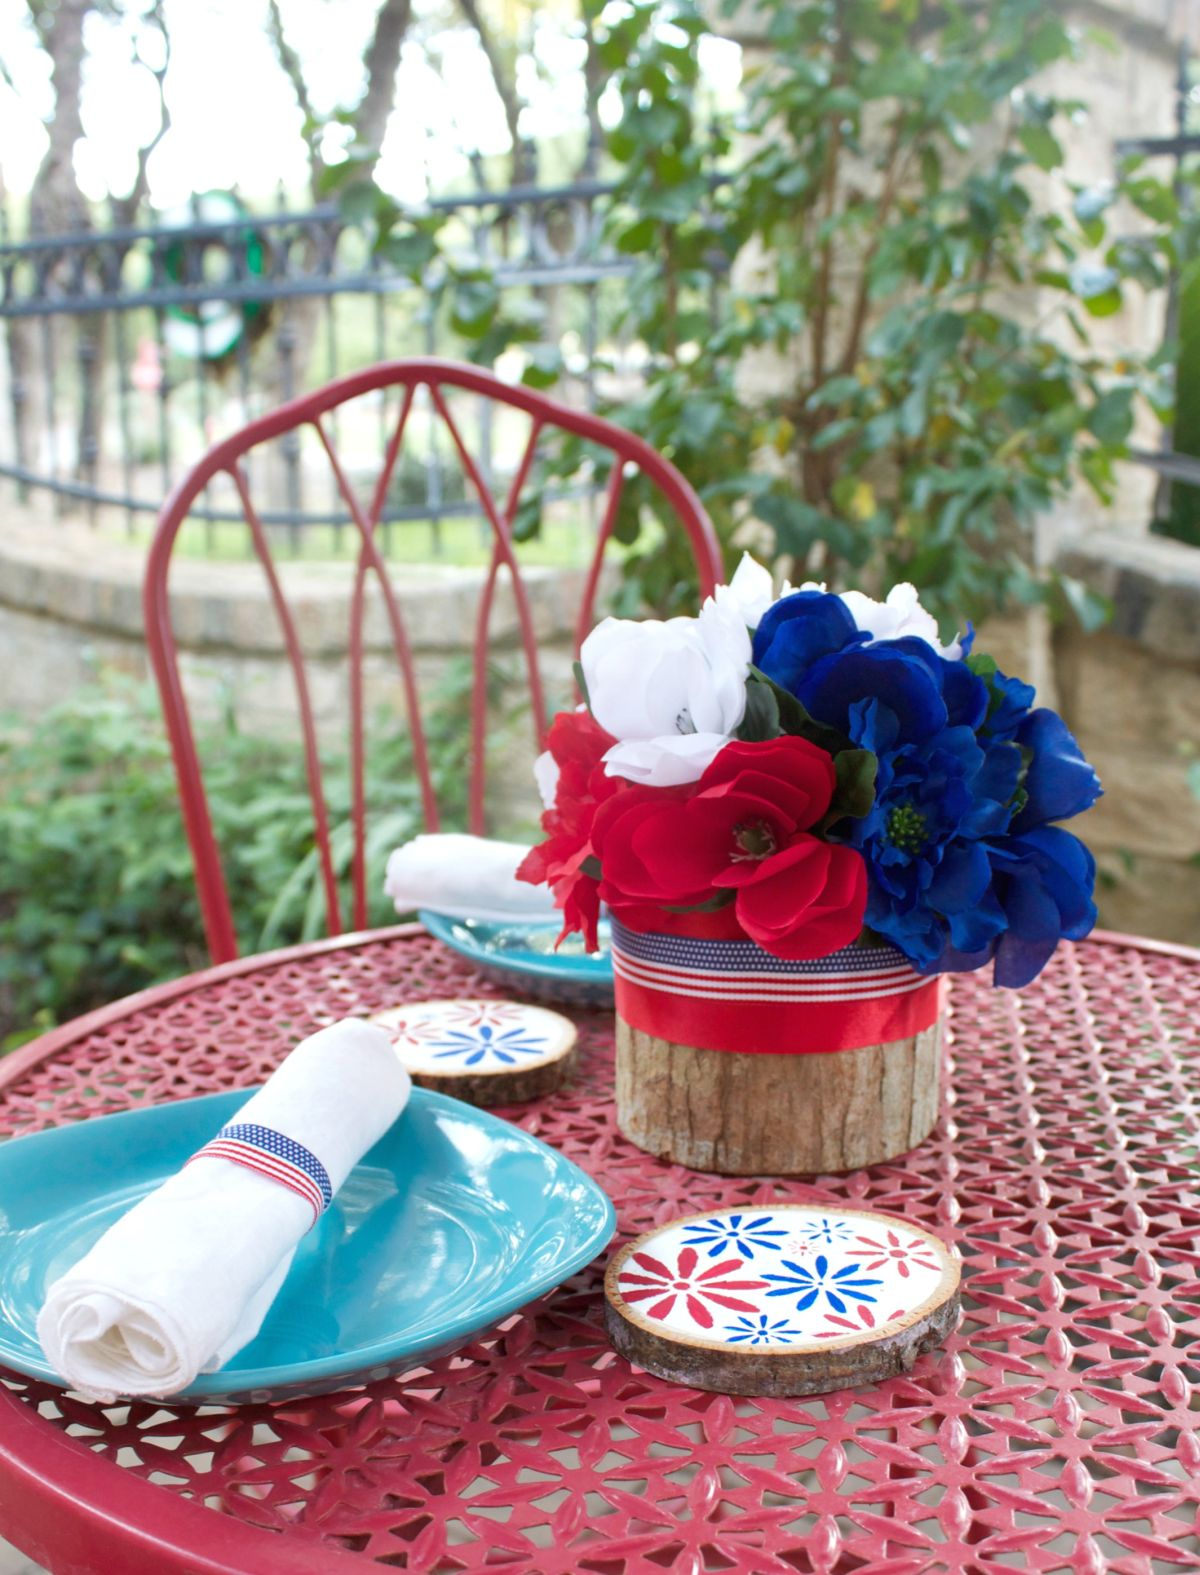 15 Extraordinary DIY 4th of July Centerpiece Designs That Will Stun Your Guests